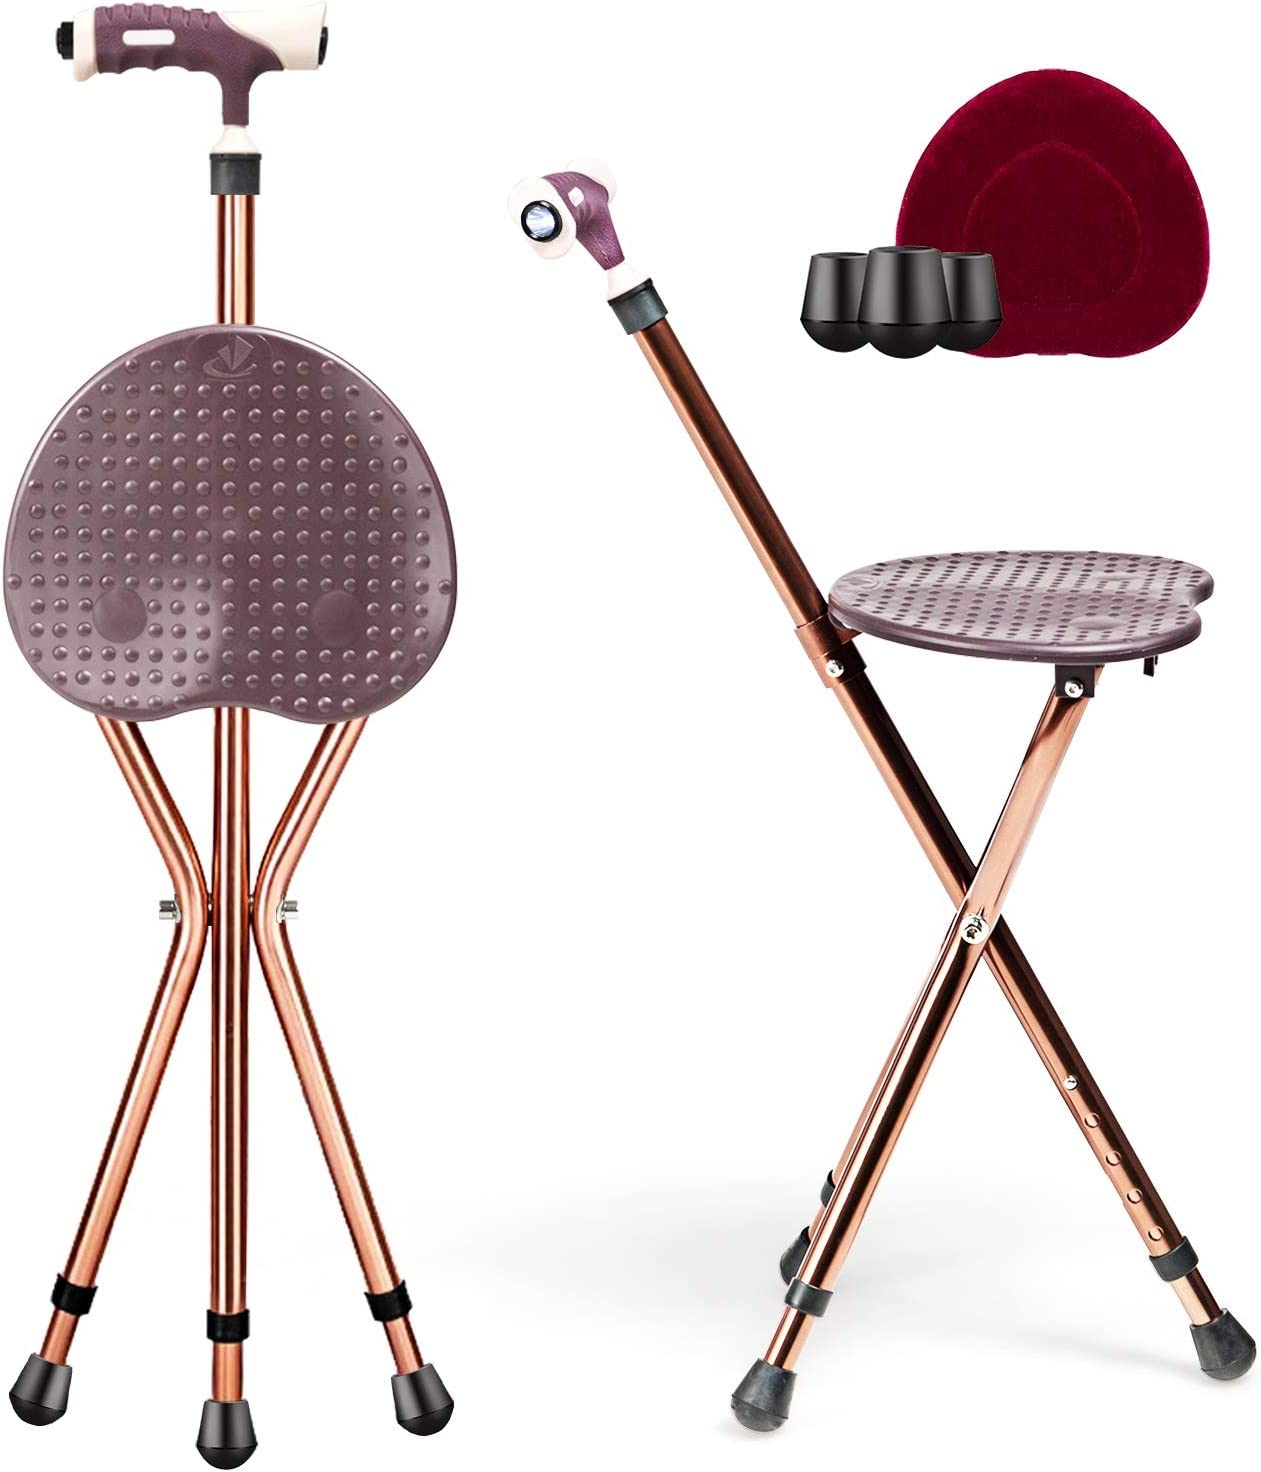 It is very popular GYMAX Walking Stick famous Chair Combo Folding Seat Cane LED with Ligh